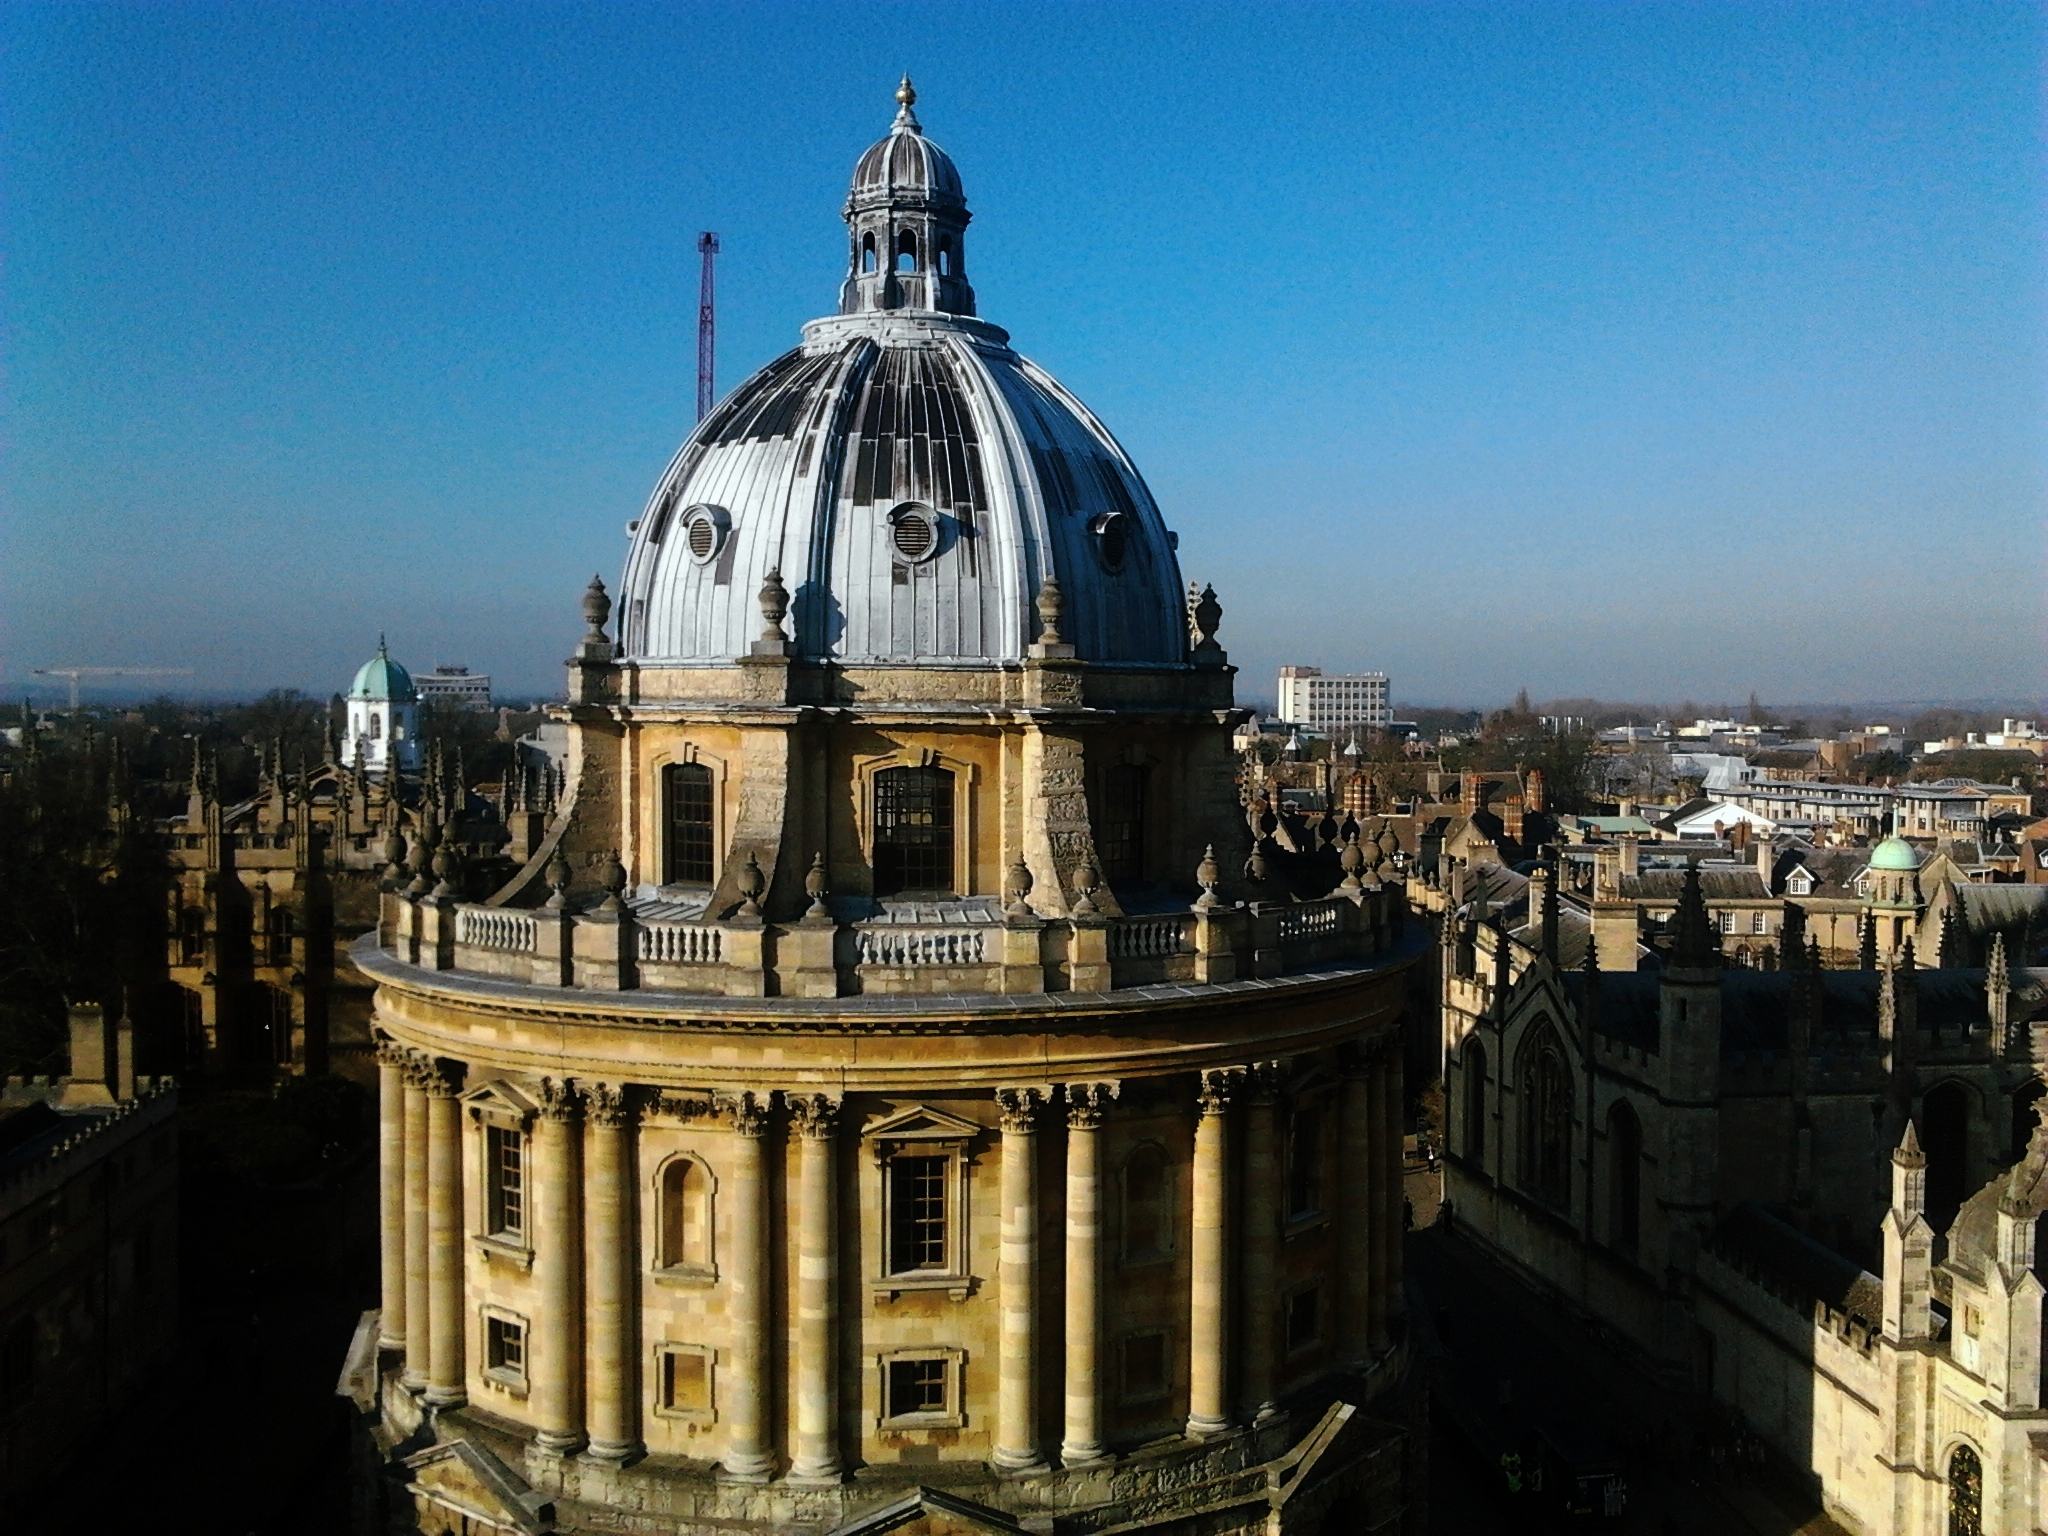 DPhil inSociology - University of Oxford, 2015-2018Thesis: High Risk Feminism in Colombia: Women's Mobilisation in Violent ContextsCommonwealth ScholarSocial Sciences and Humanities Research Council of Canada Doctoral Fellow